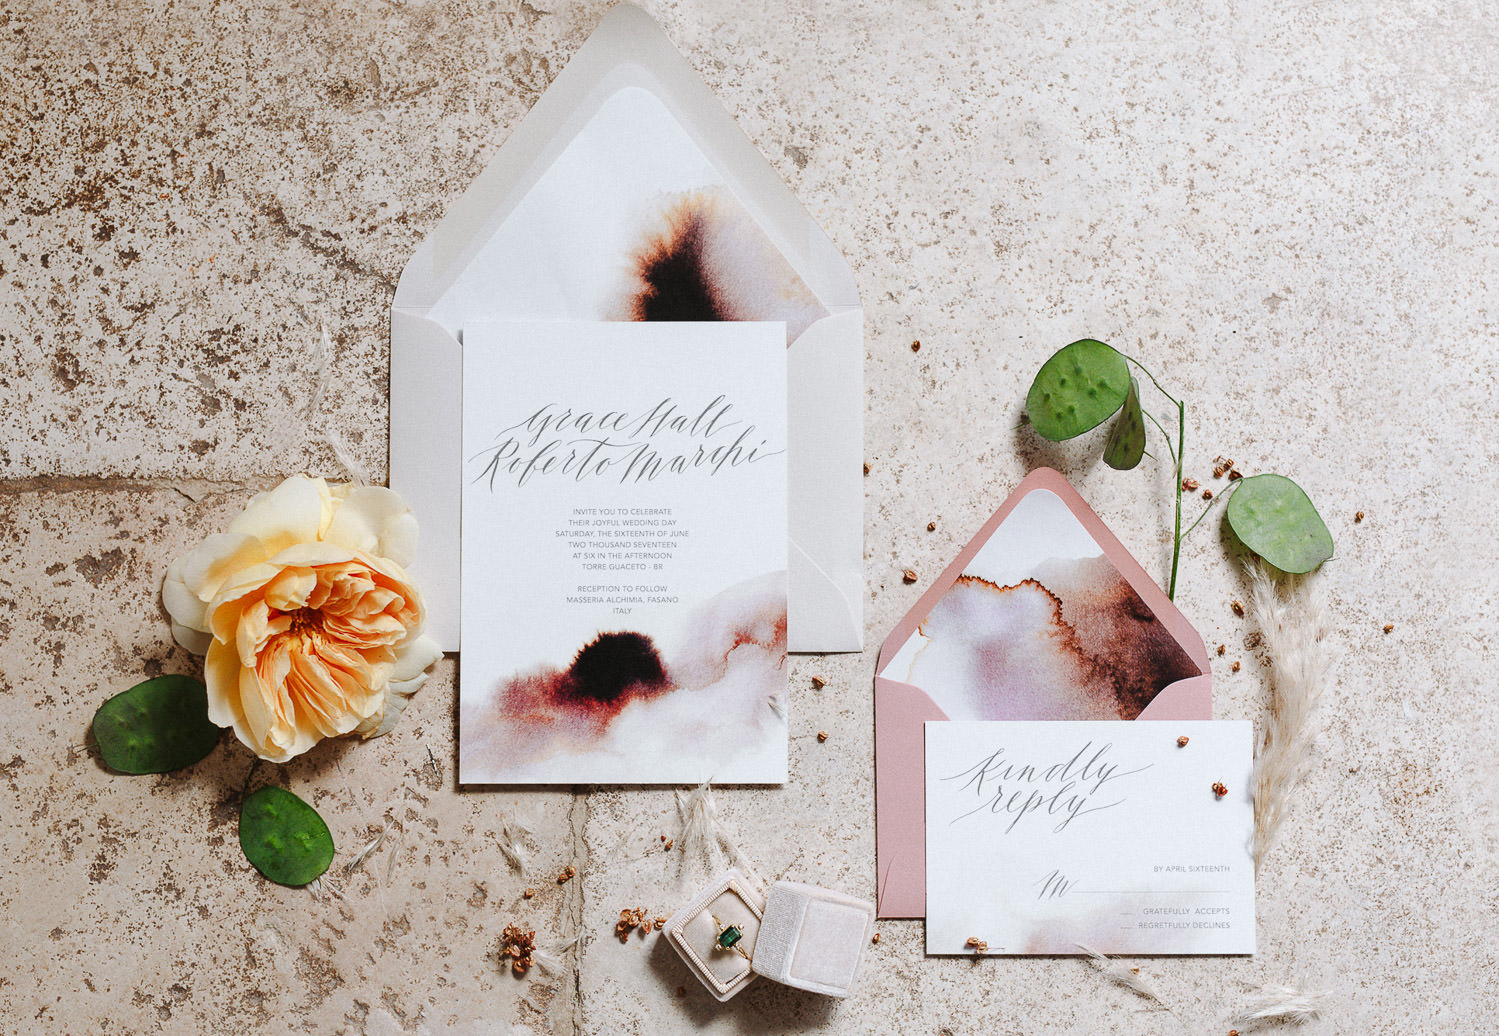 Bespoke wedding suite invitation made by Camilla Anchisi Design for a modern and ethereal elopement in Puglia - Photo: Camilla Anchisi Photography